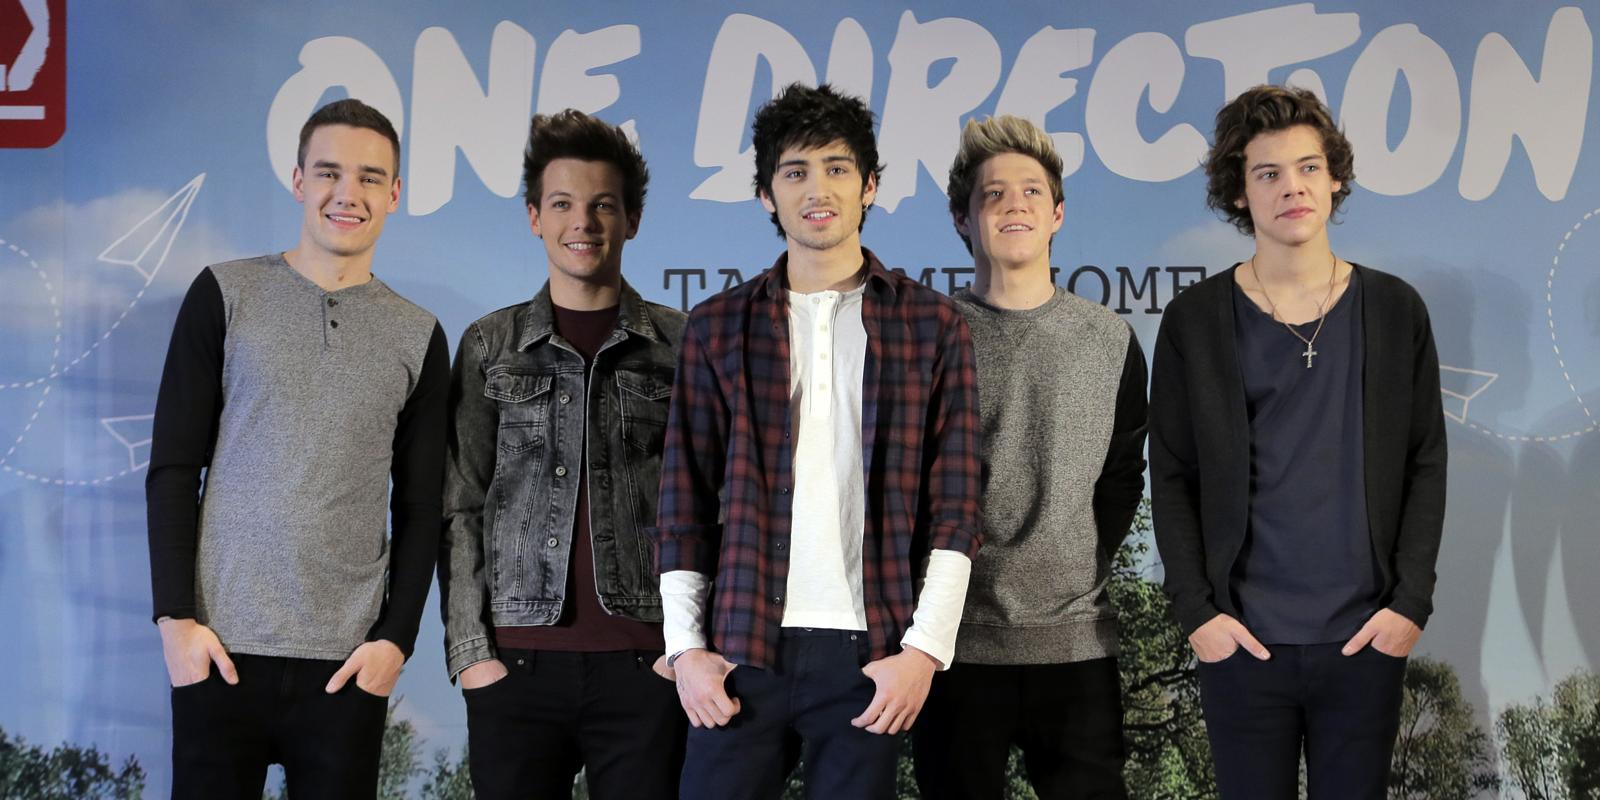 one direction essay One direction (1d) was born in 2010 when the british musical producer simon cowell recruited the teenage boys harry styles, liam payne, zayn 1 malik, niall horan, and louis tomlinson from the talent show x factor to form one of the most successful boy bands in the history of pop.